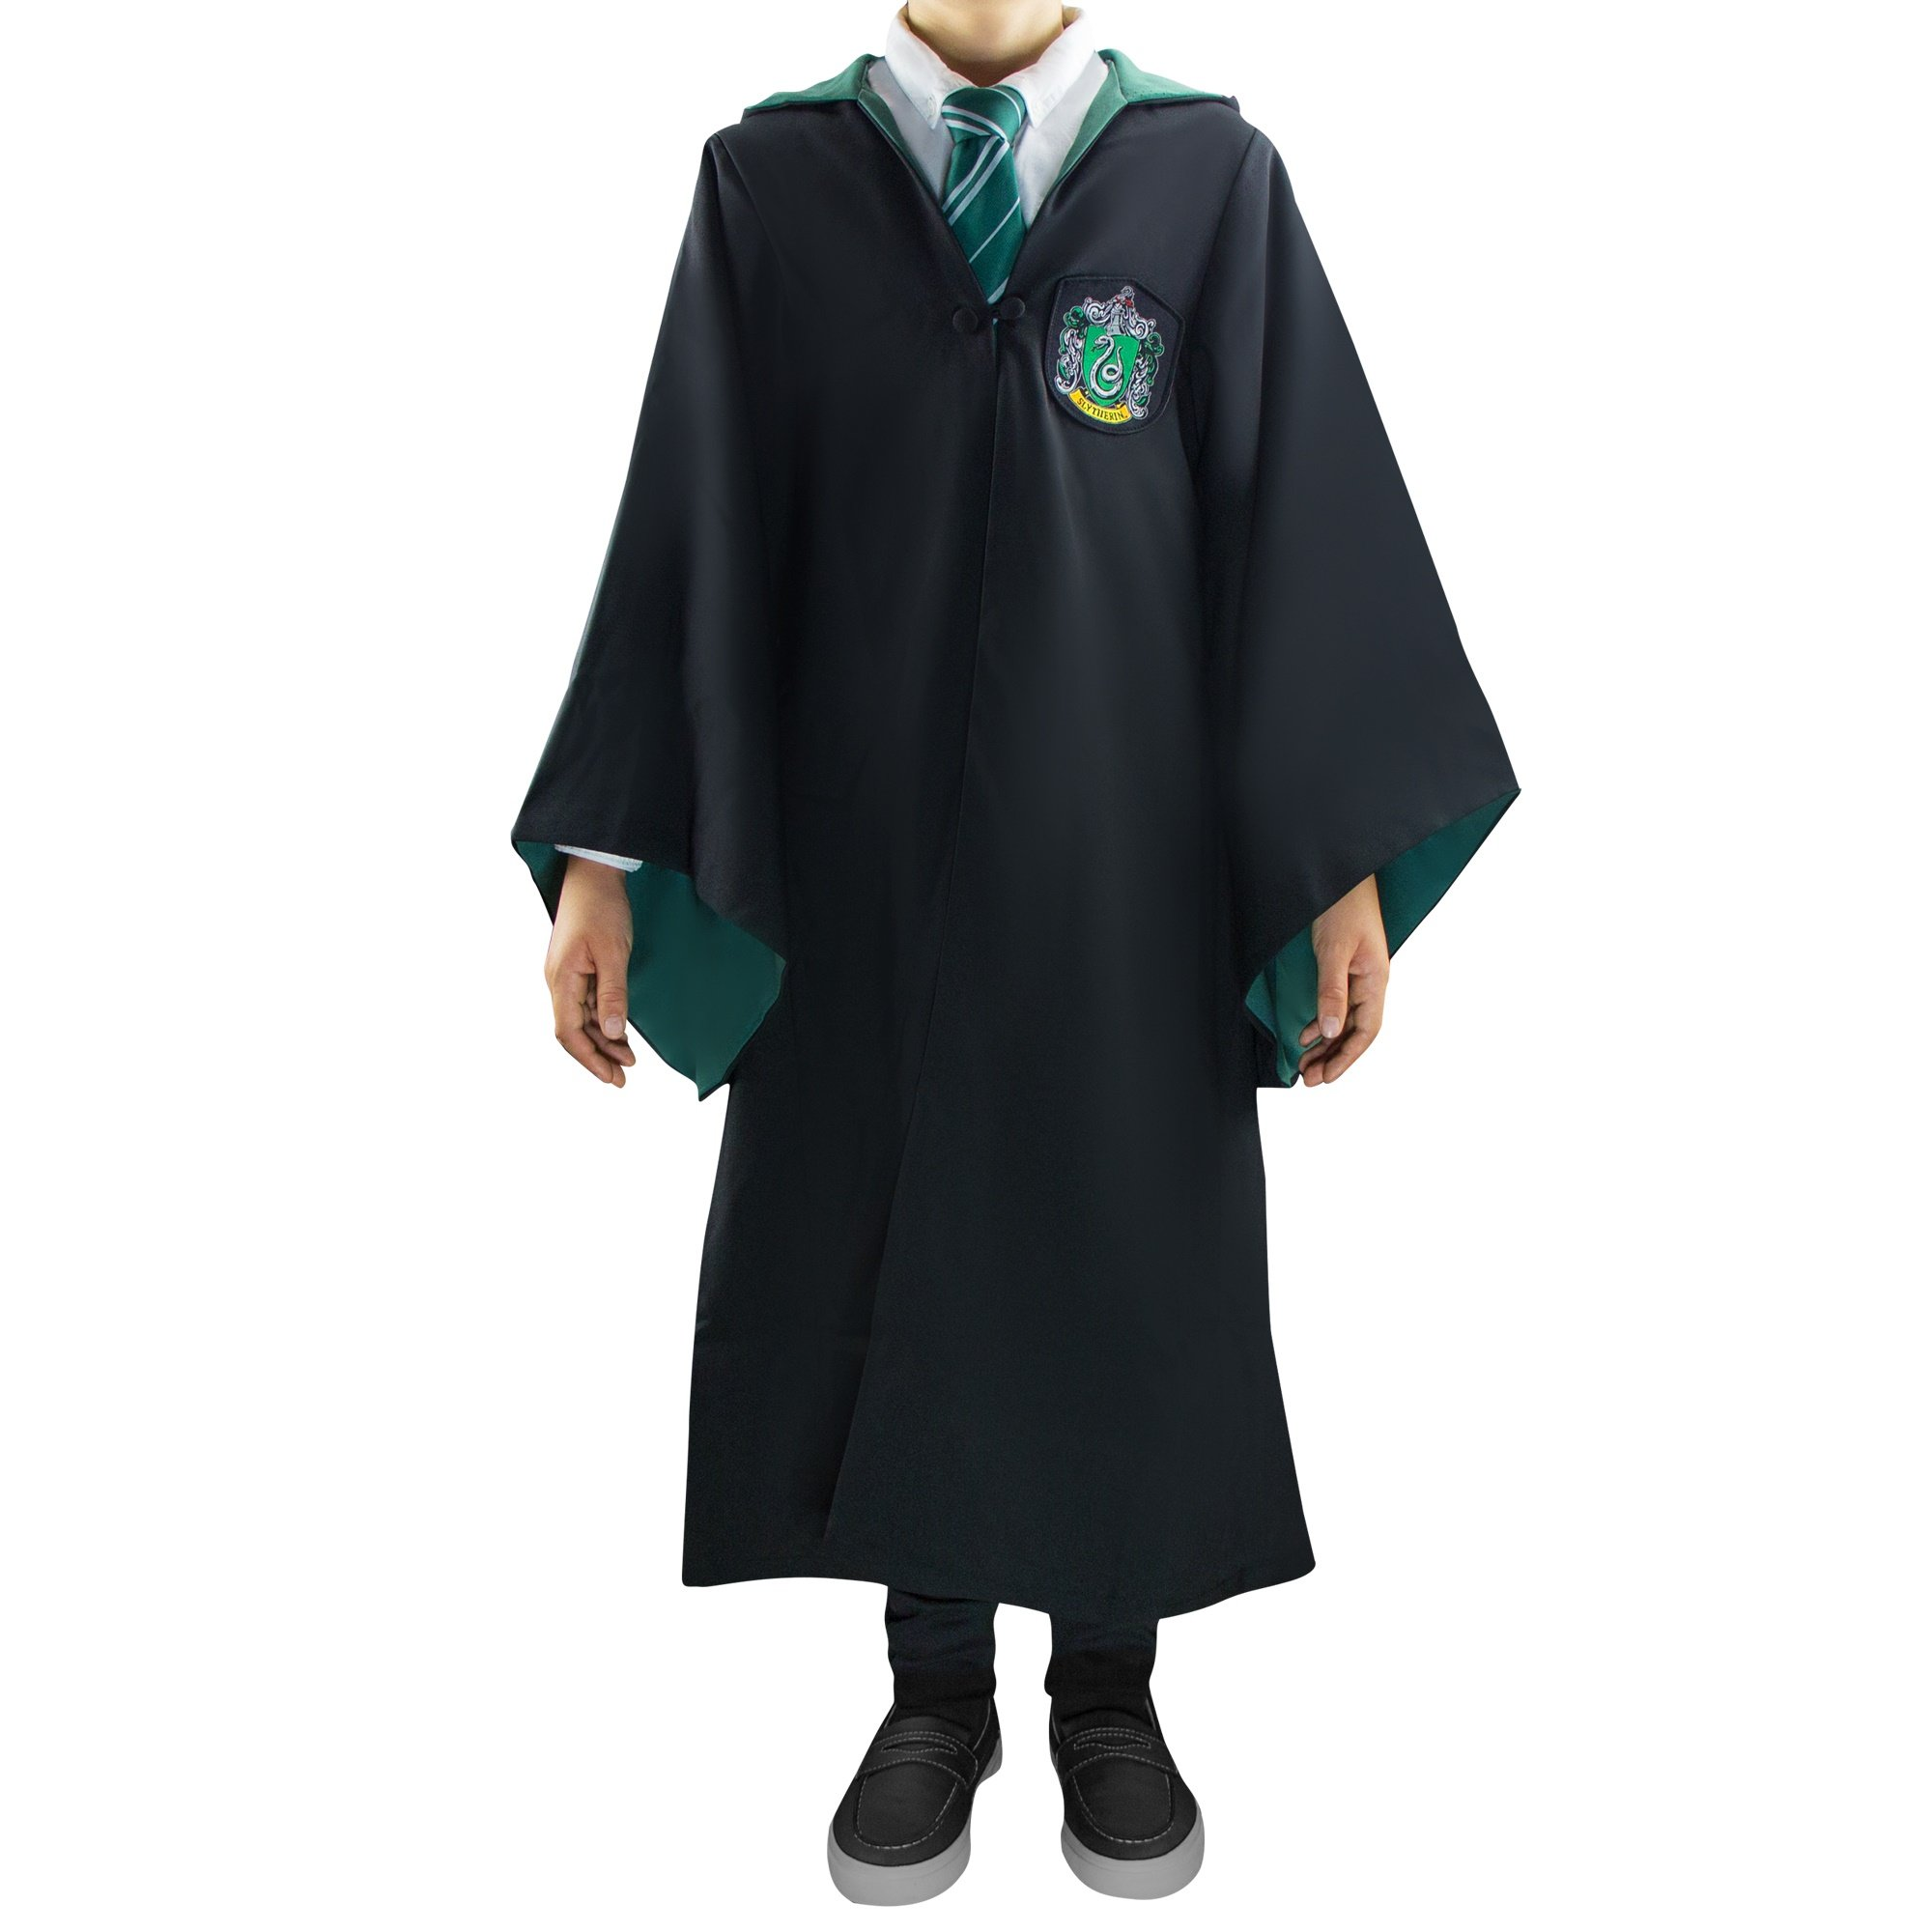 Harry Potter Authentic Tailored Wizard Robes Cloak by Cinereplicas,Slytherin,XSmall